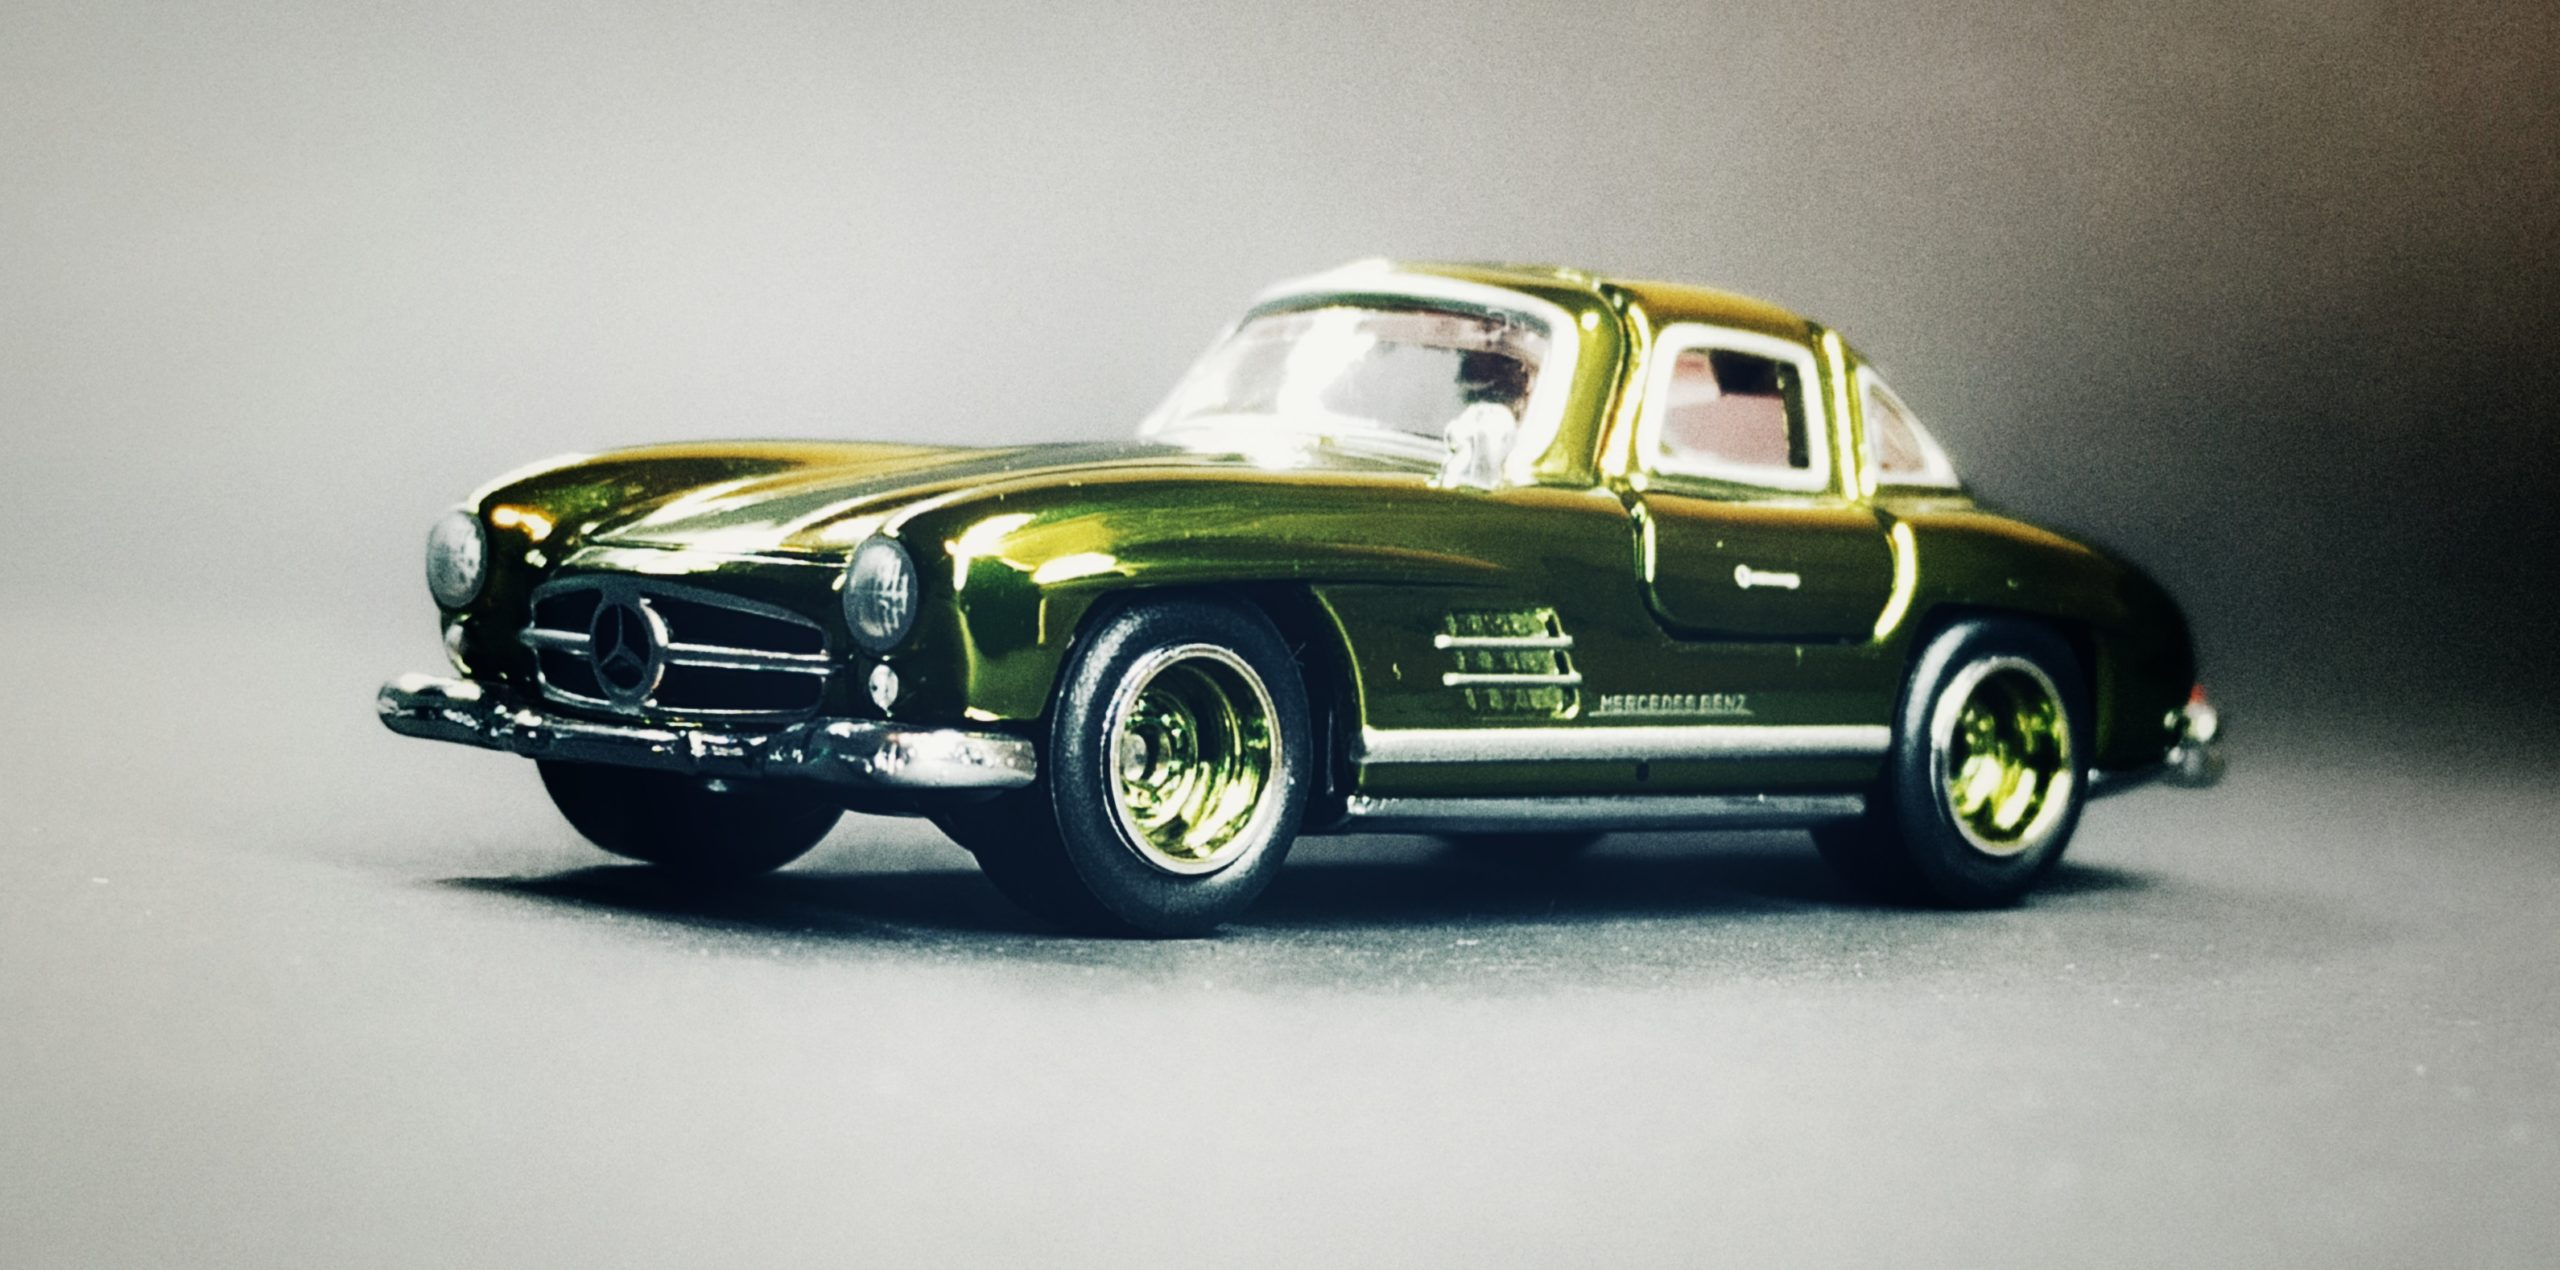 Hot Wheels '55 Mercedes-Benz 300 SL (GDF83) 2019 RLC Exclusive (1 of 12.500) spectraflame green side angle